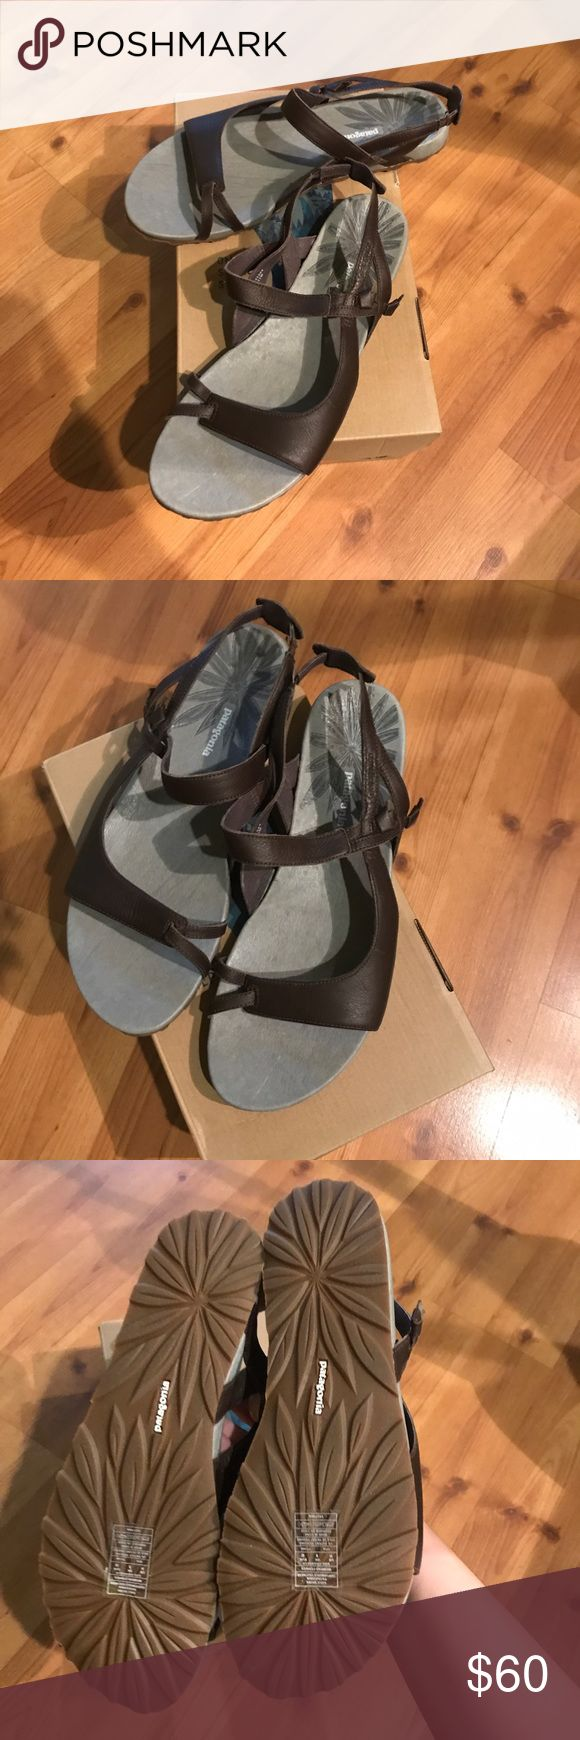 FINAL PRICE NWT Patagonia poly knotty sandals Brand new brown sandals by Patagonia. Absolutely comfortable and cute perfect for summer for casual or active days! Patagonia Shoes Sandals